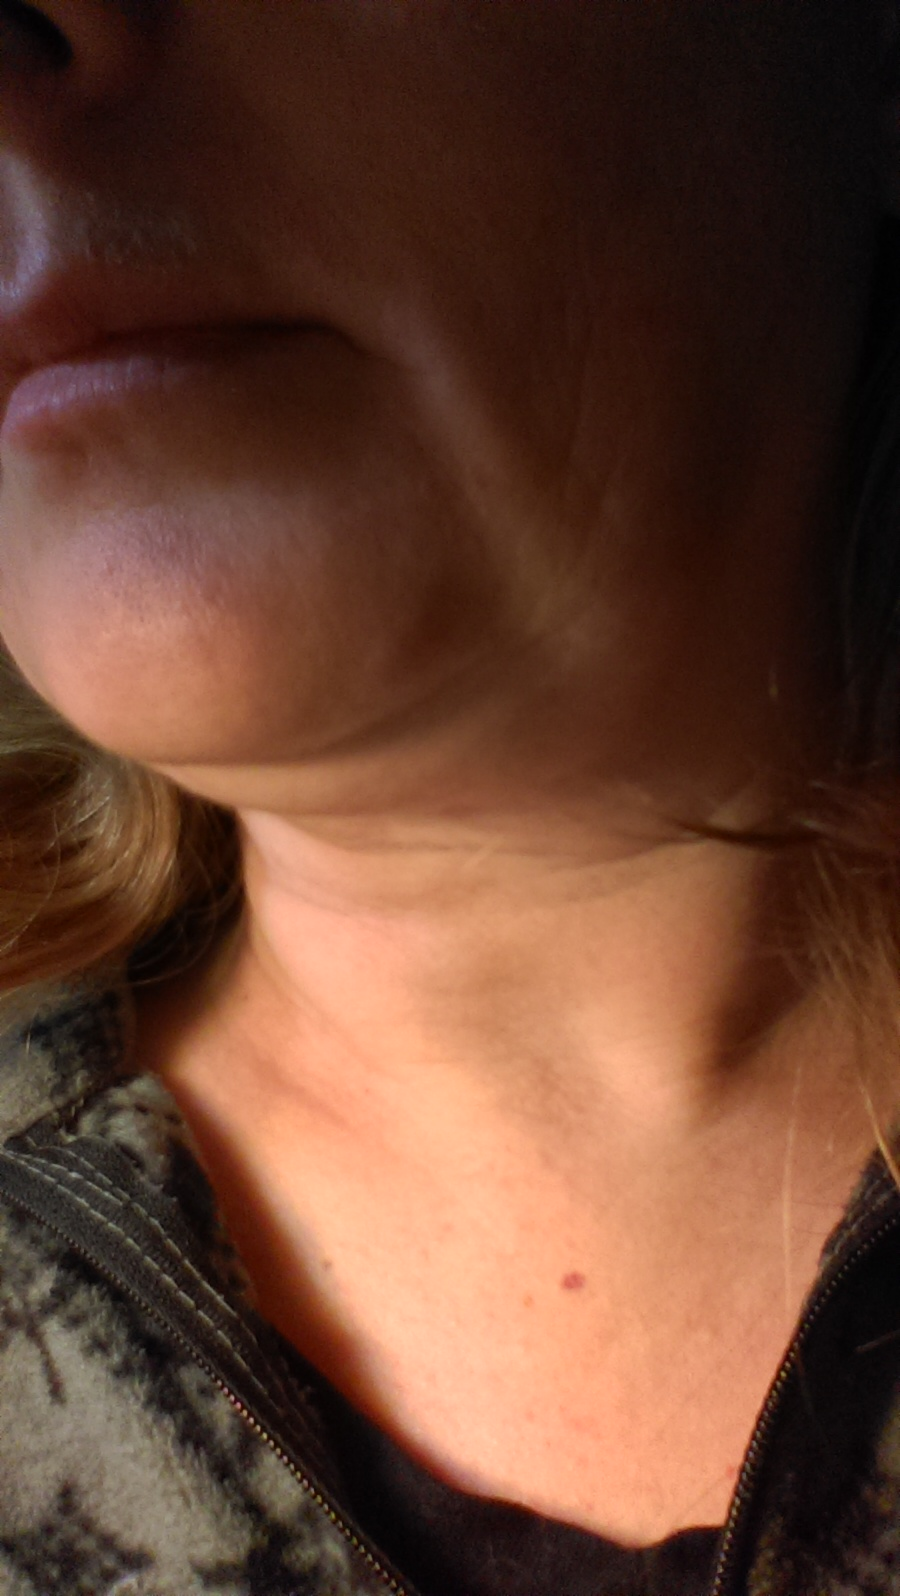 red marks on neck